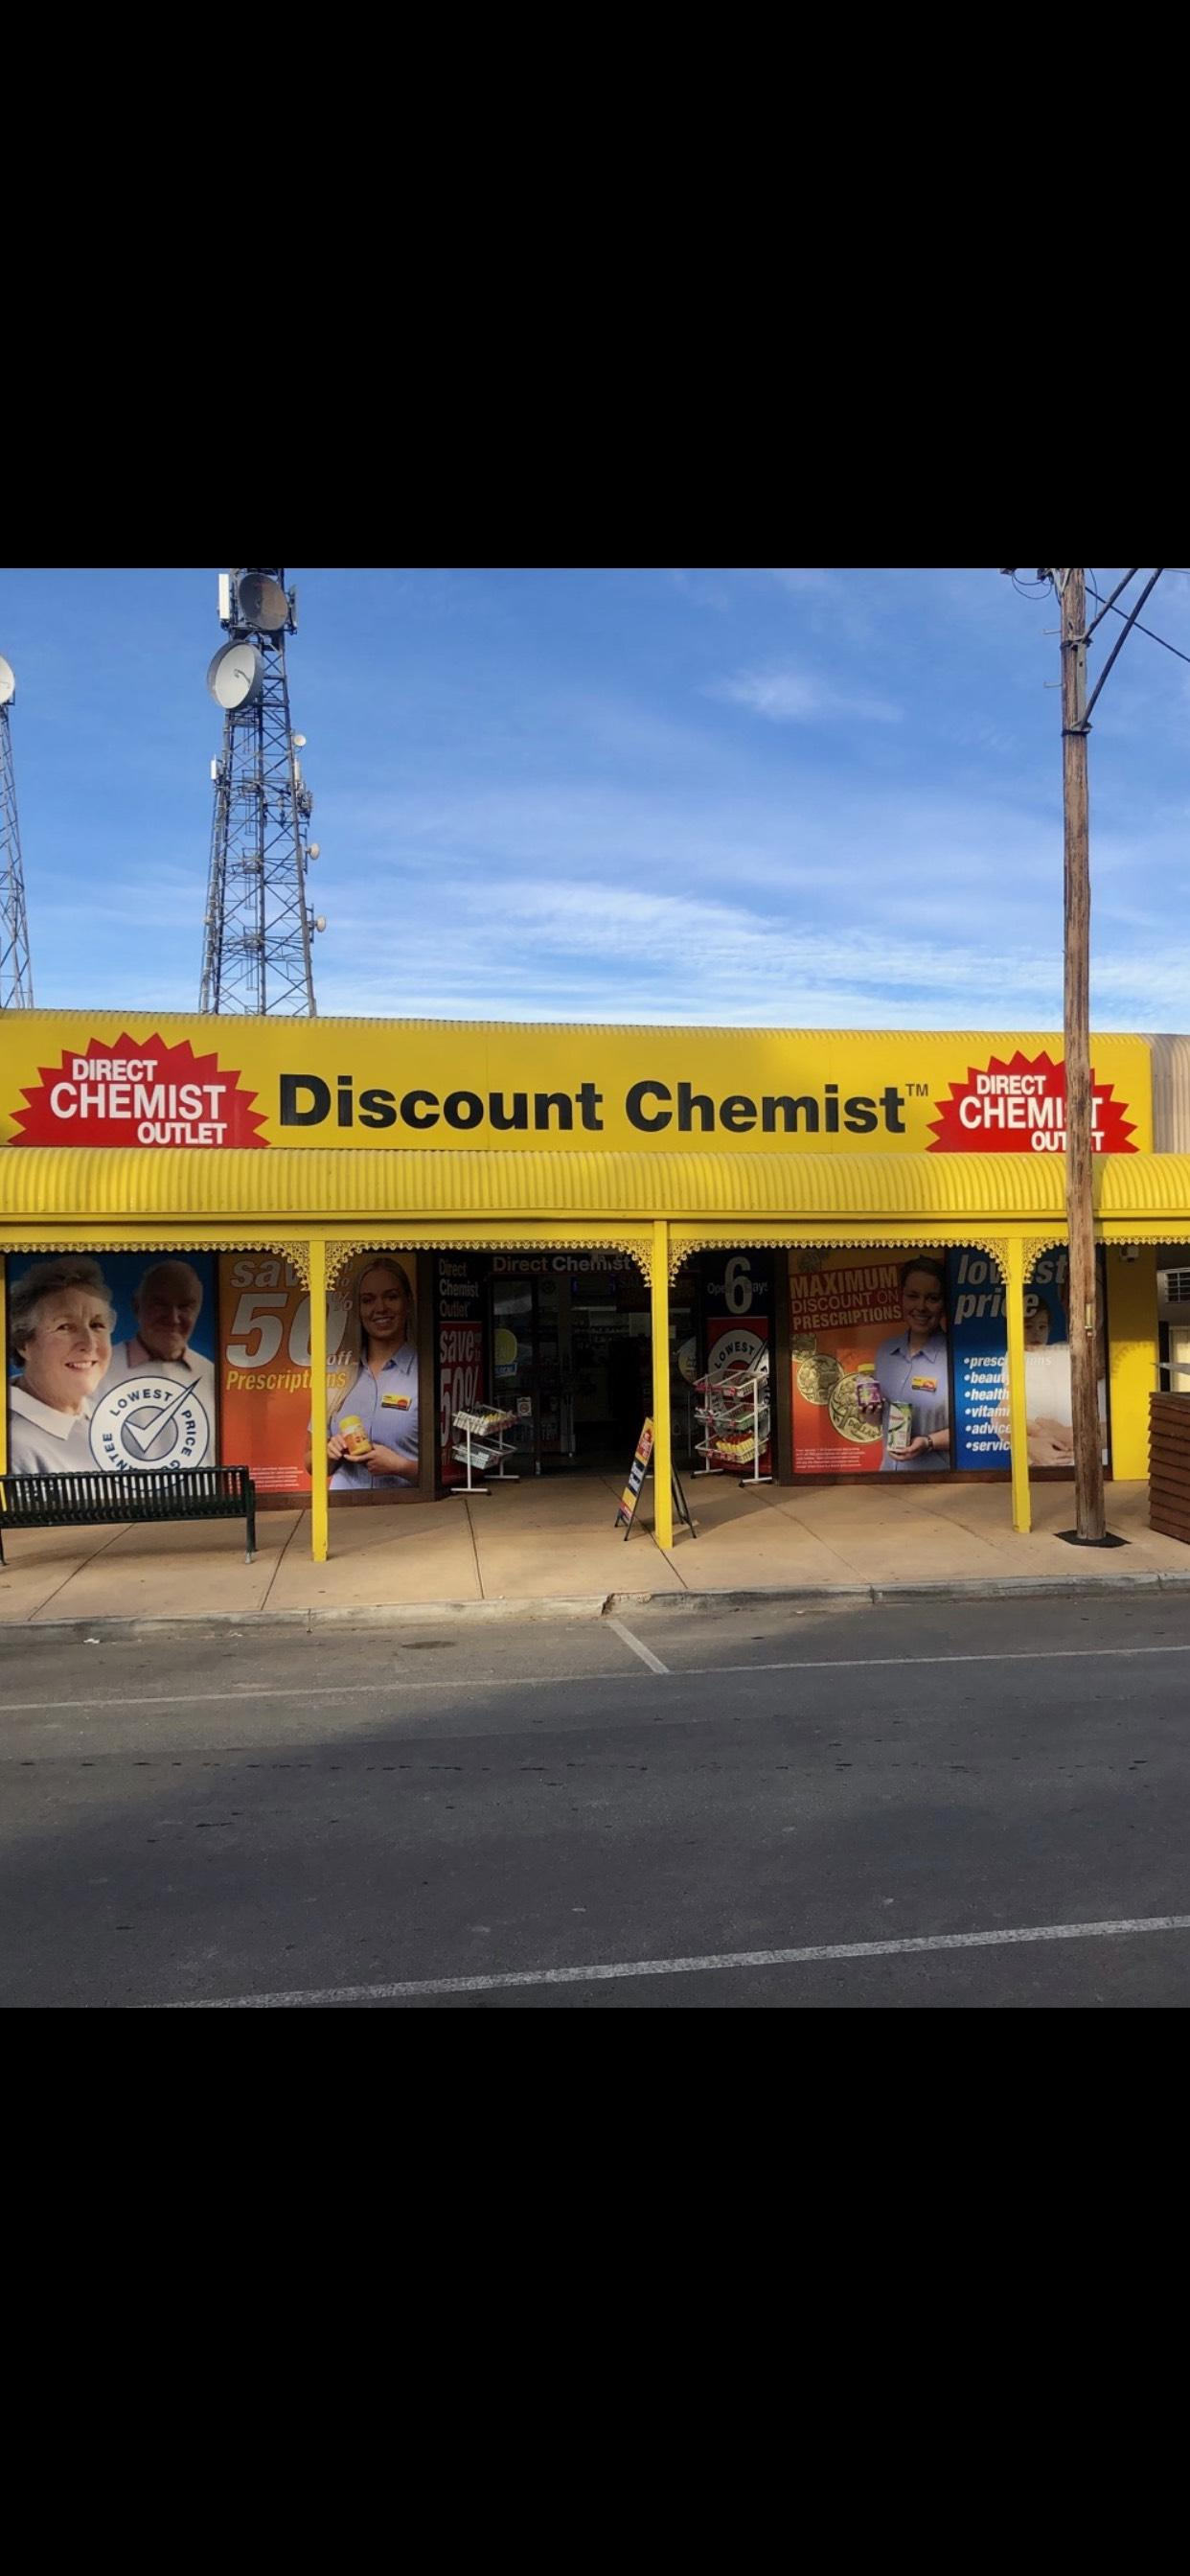 Direct Chemist Outlet Heyfield